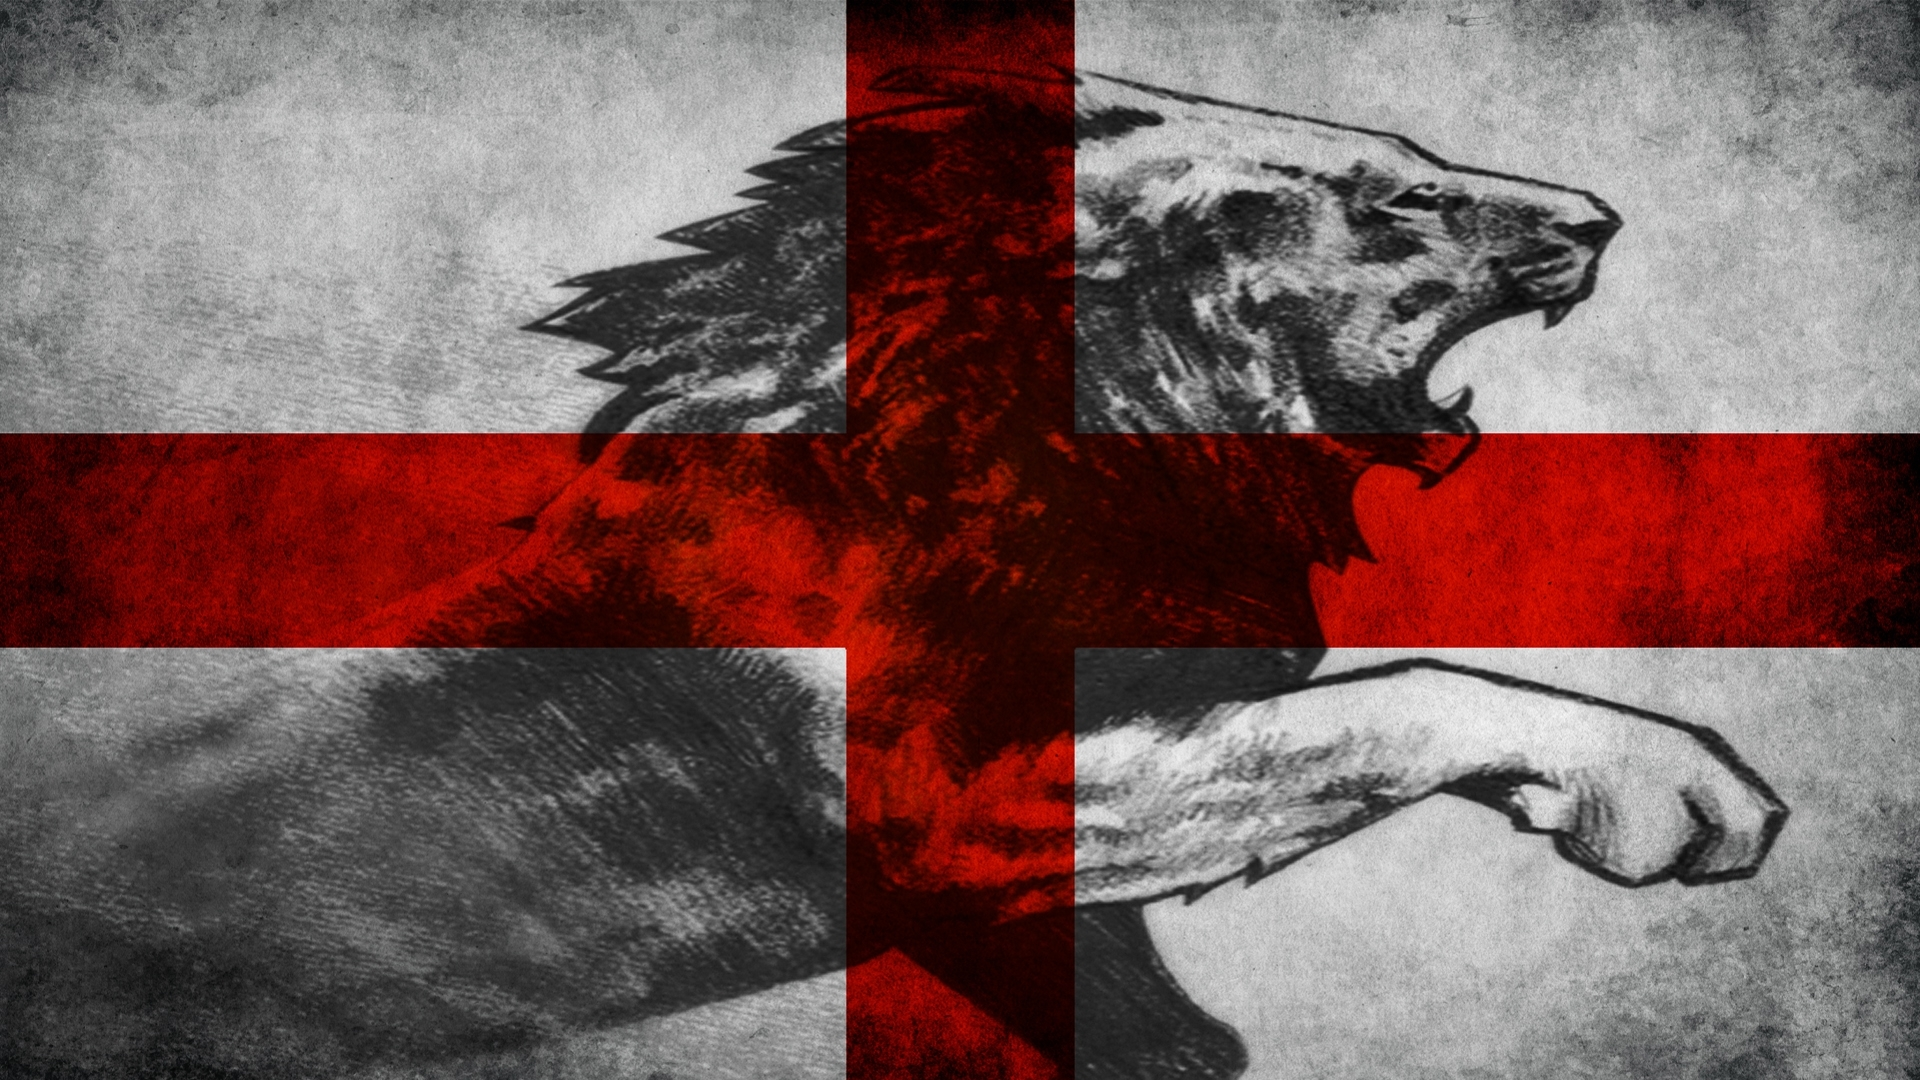 FlagsEngland England Flags Lions Wallpaper   MixHD wallpapers 1920x1080